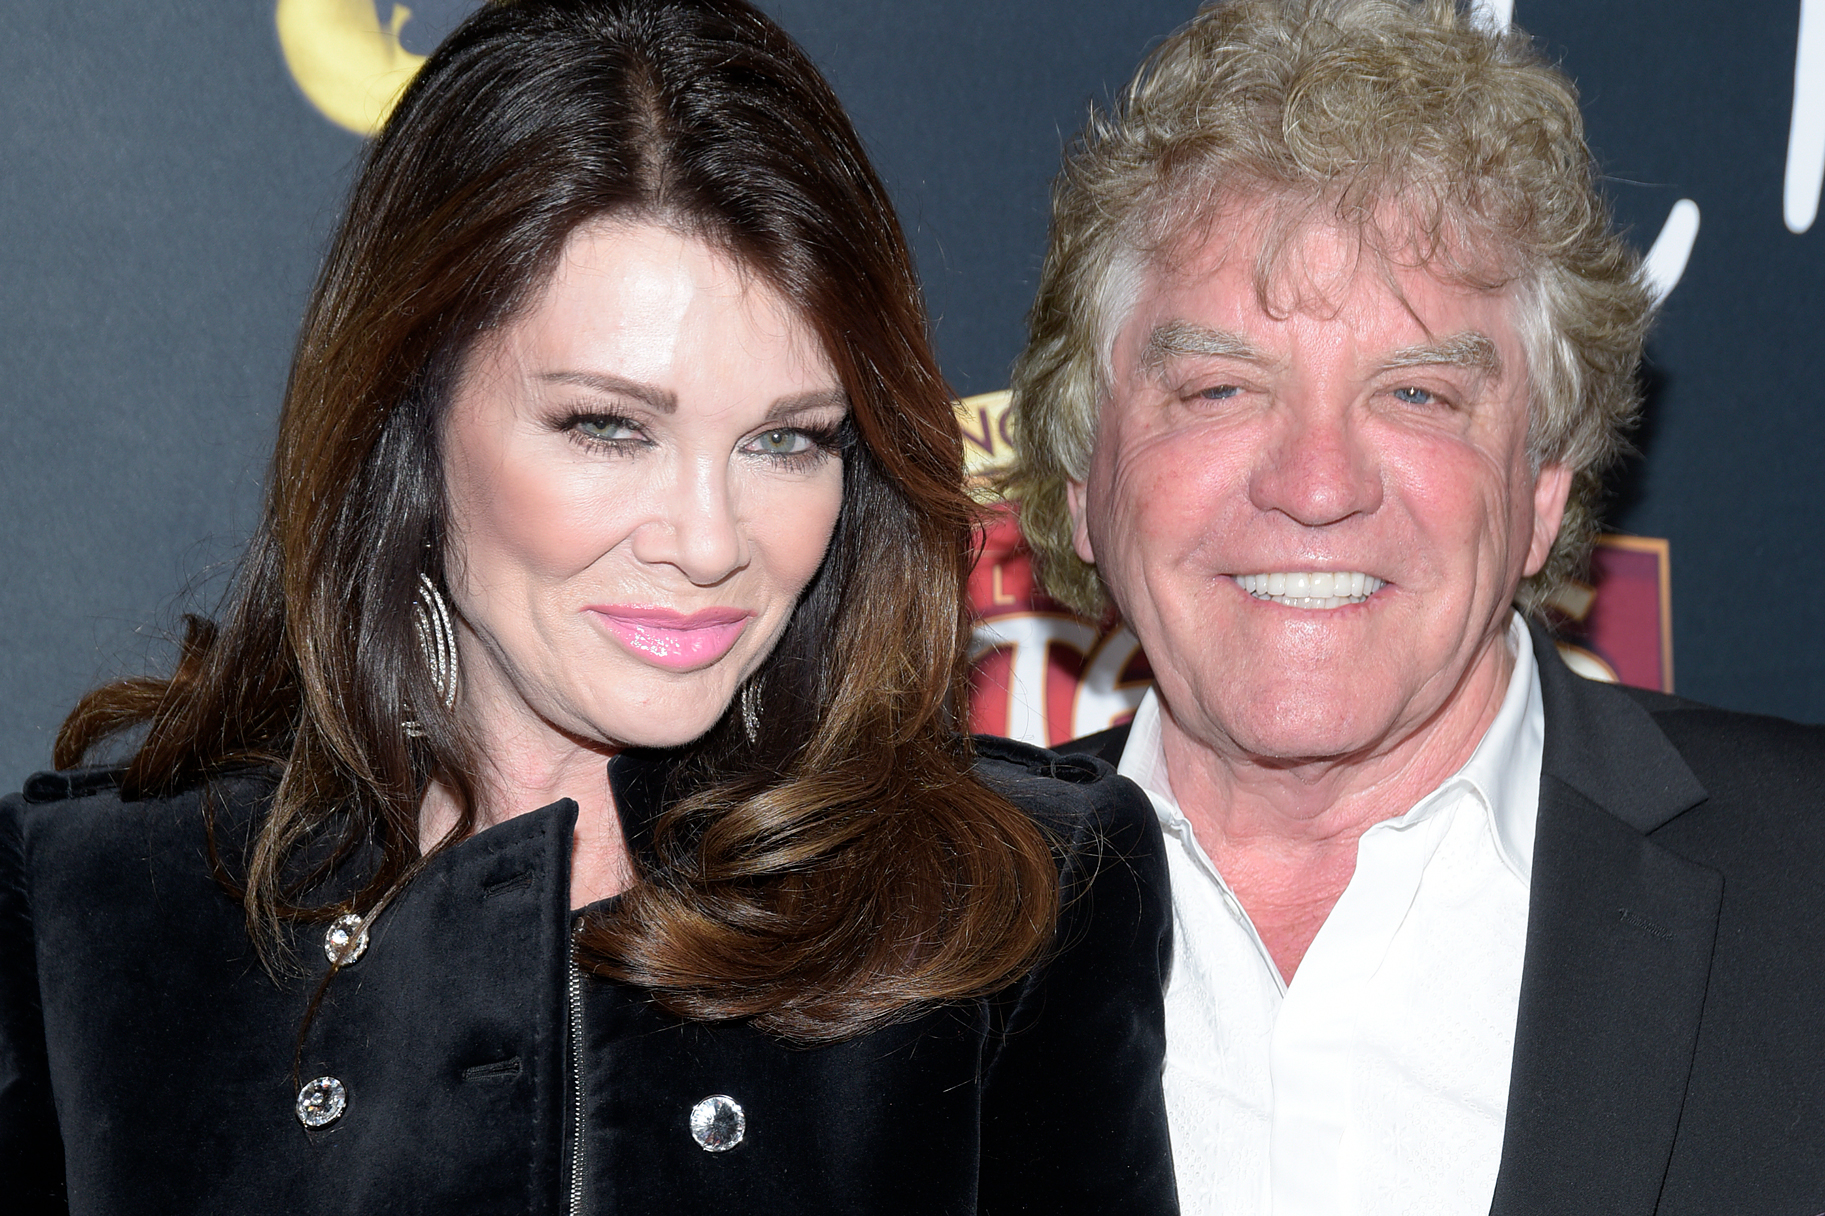 Lisa Vanderpump Ken Todd Update